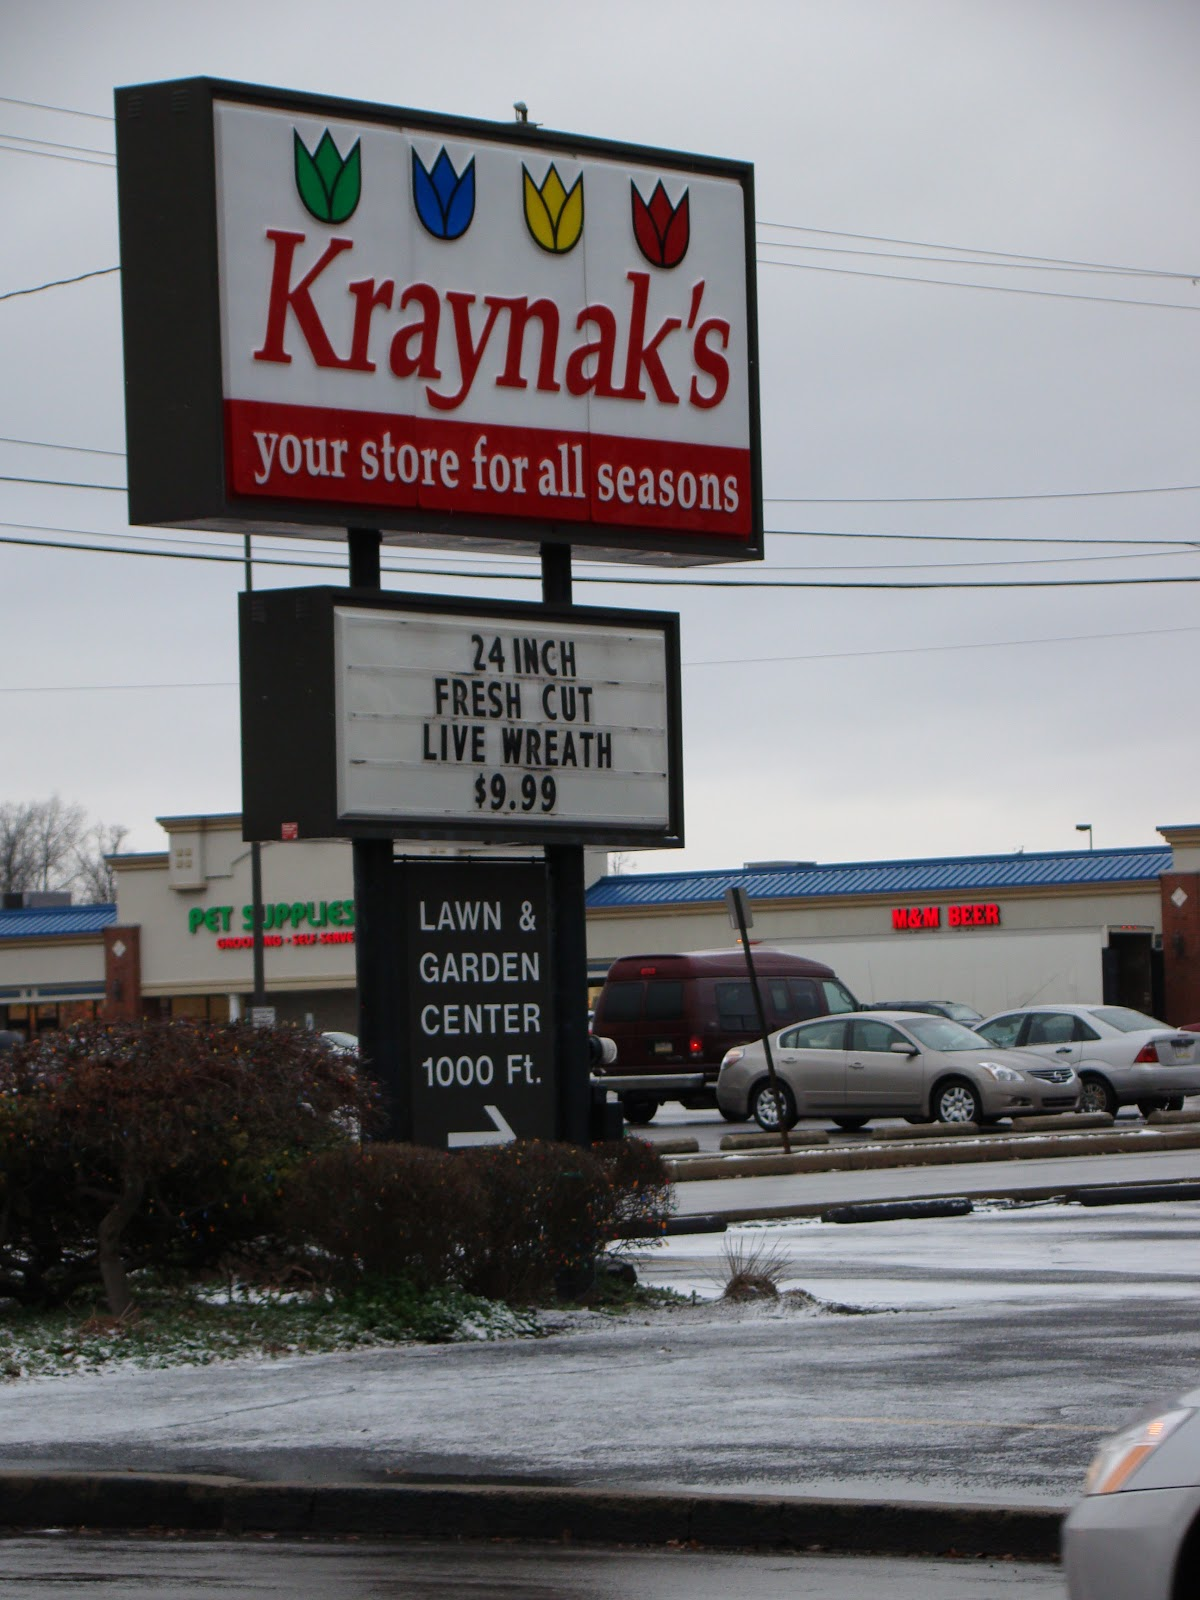 Are We There Yet!! My Travel Blog: Kraynak's Santa's Christmas ...